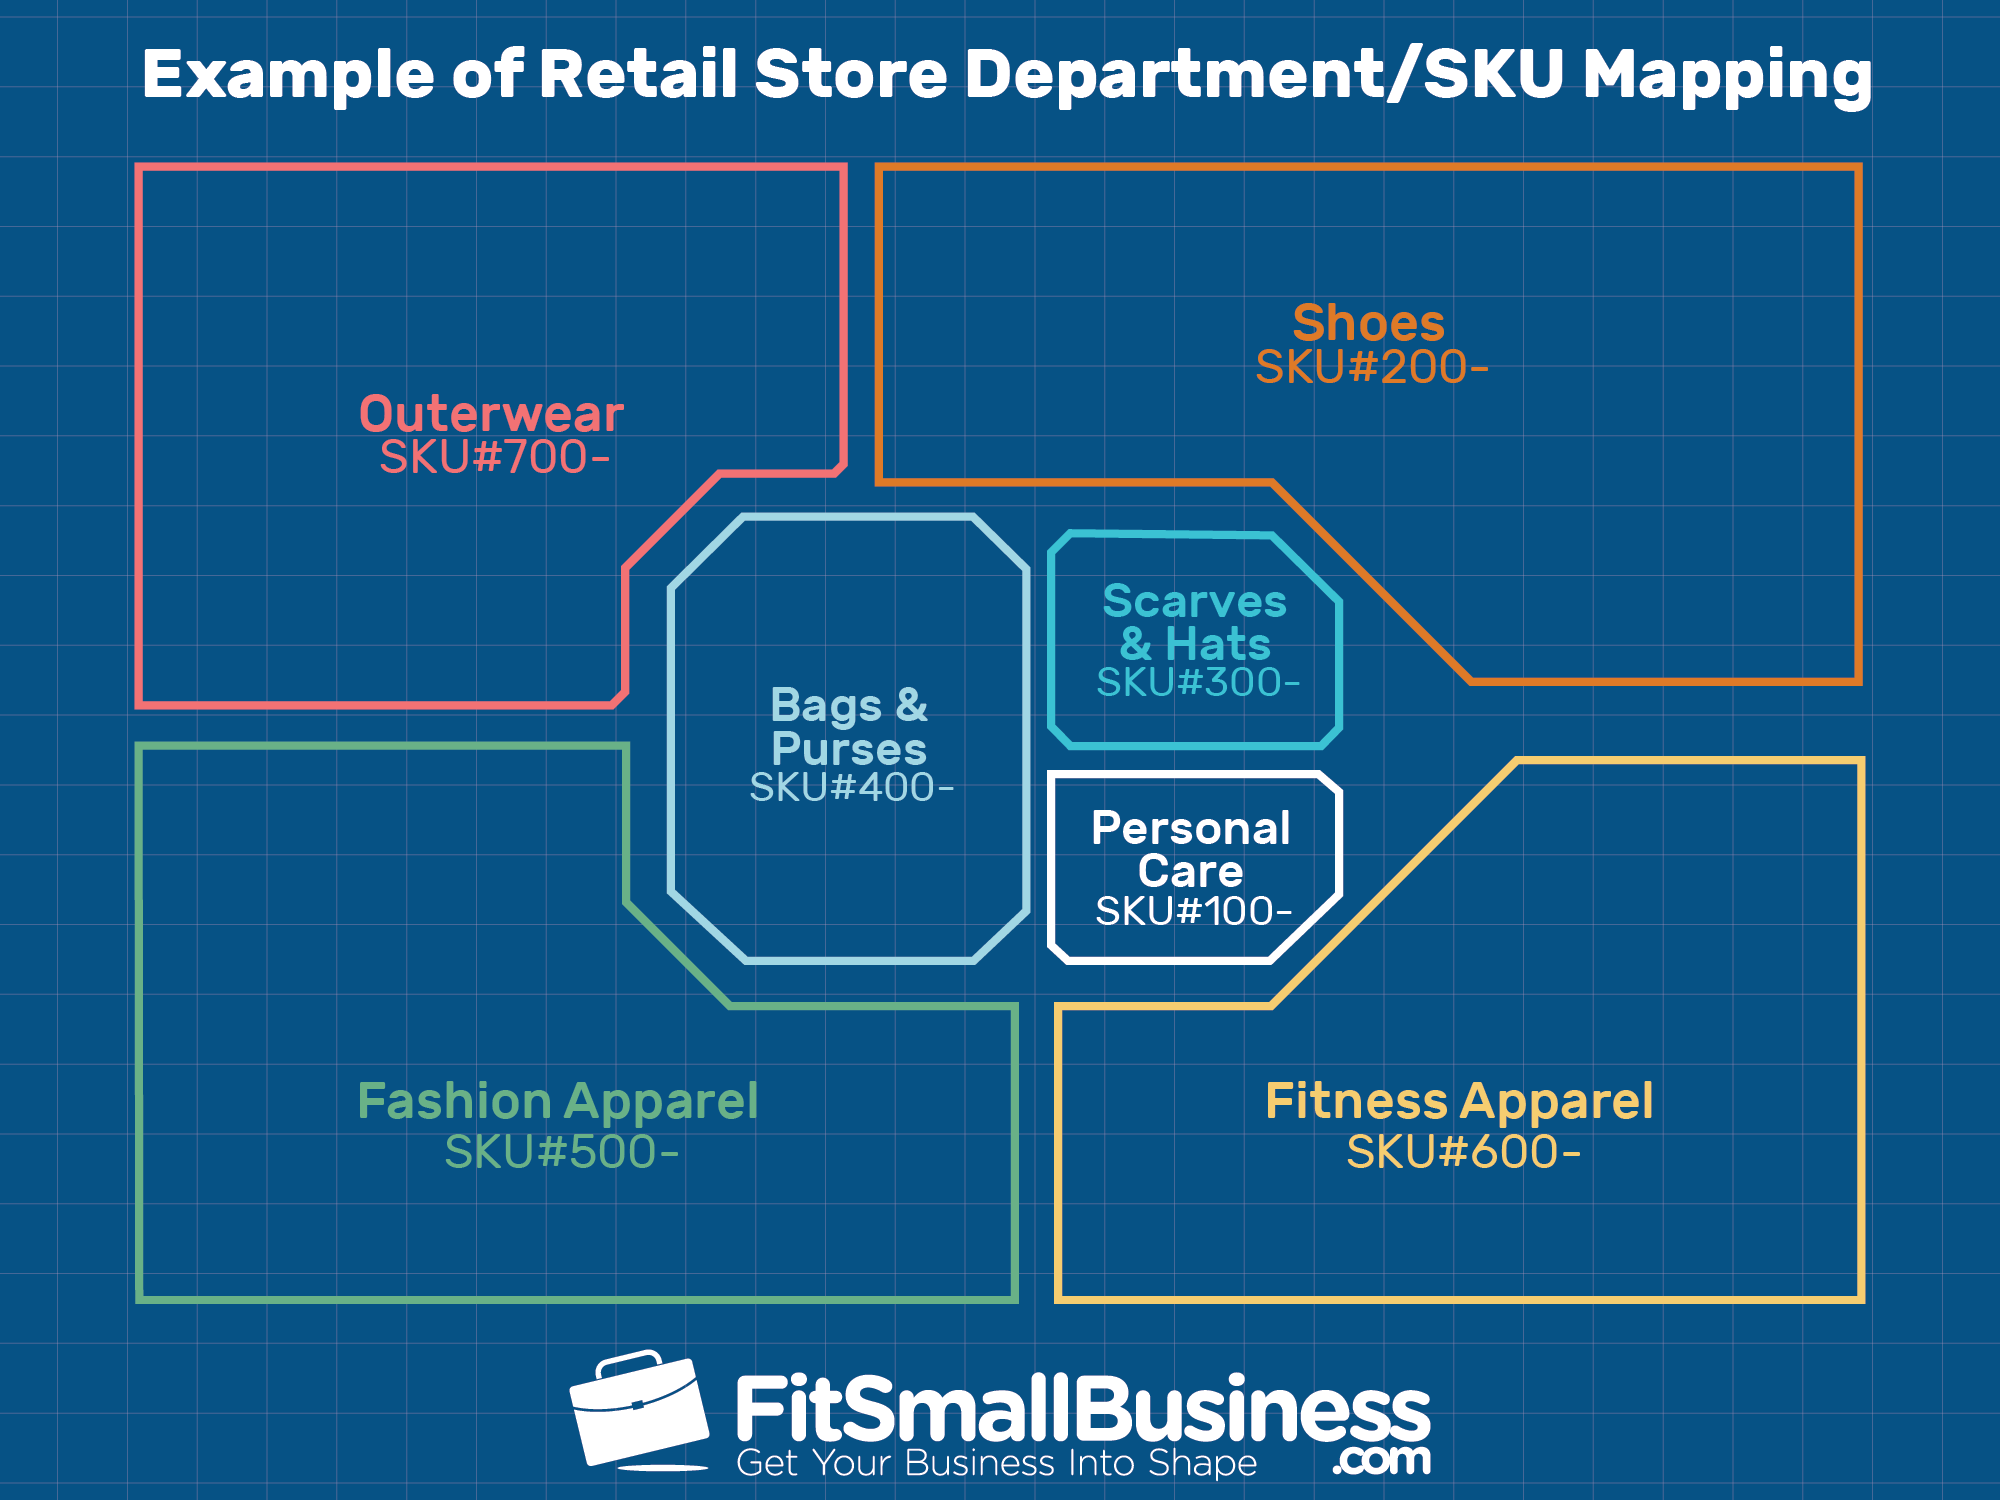 Vend - retail inventory management SKU-based sales floor mapping